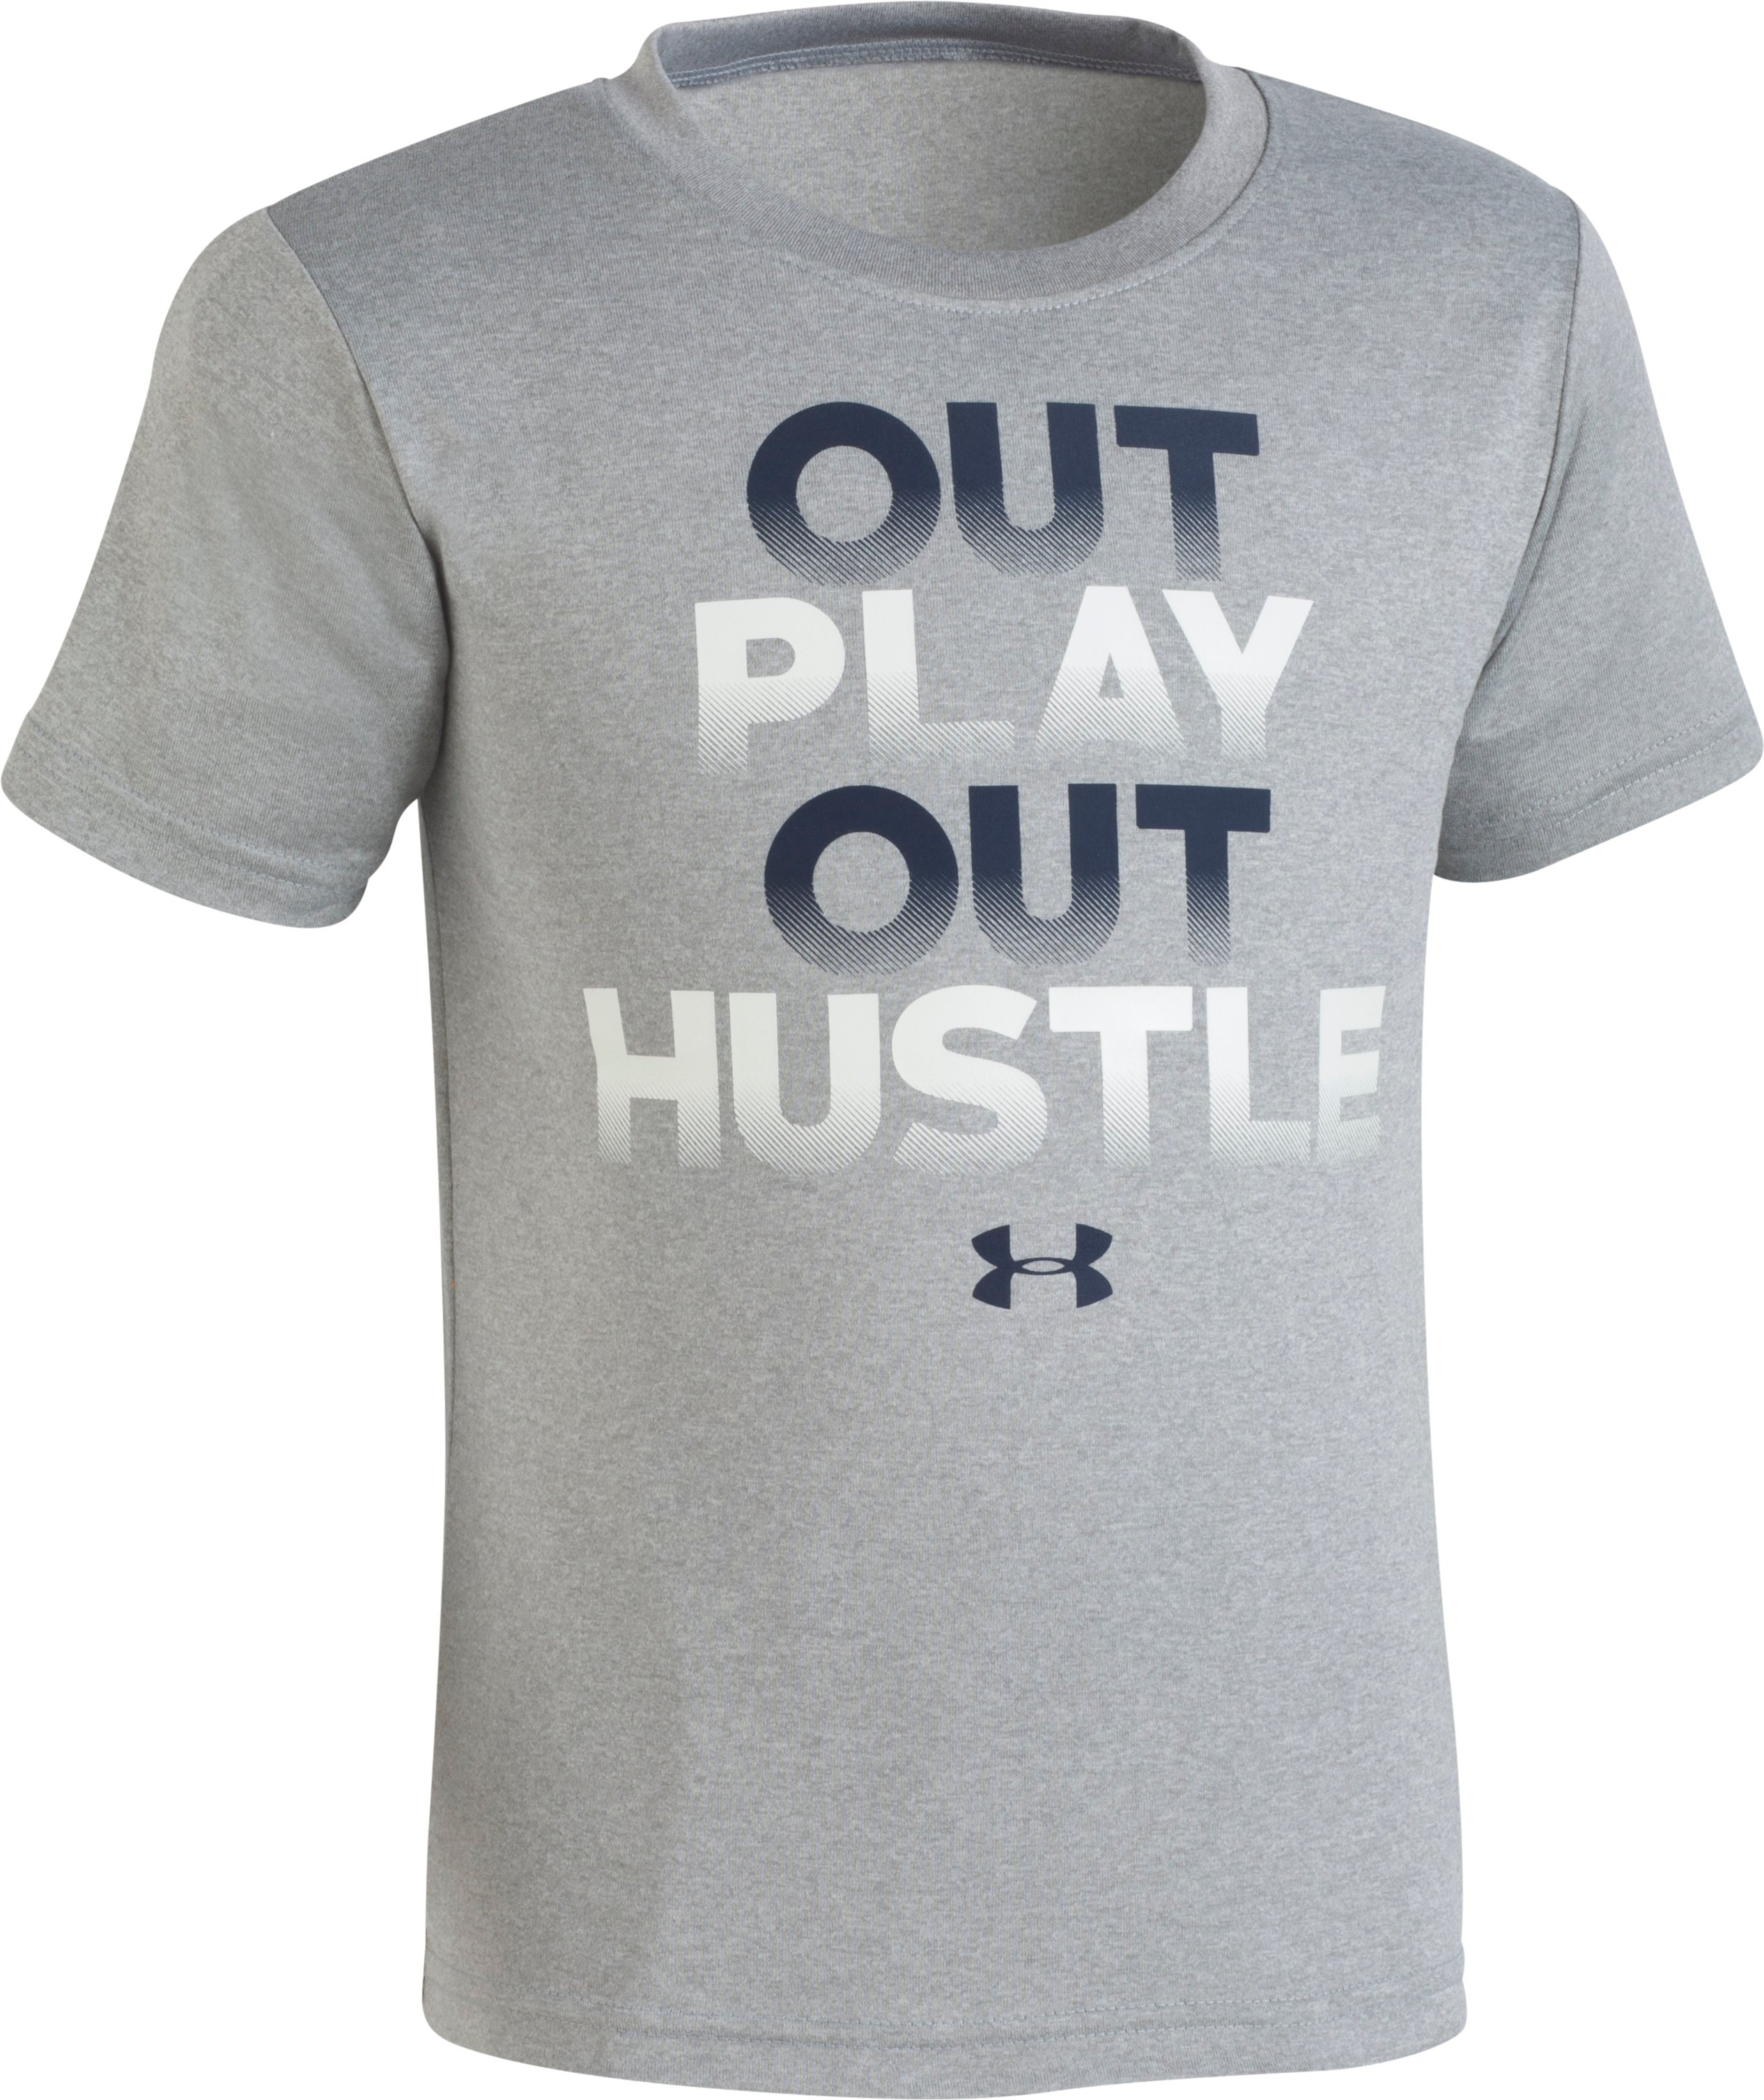 Boys' Toddler UA Out Play Out Hustle T-Shirt , STEEL MEDIUM HEATHER